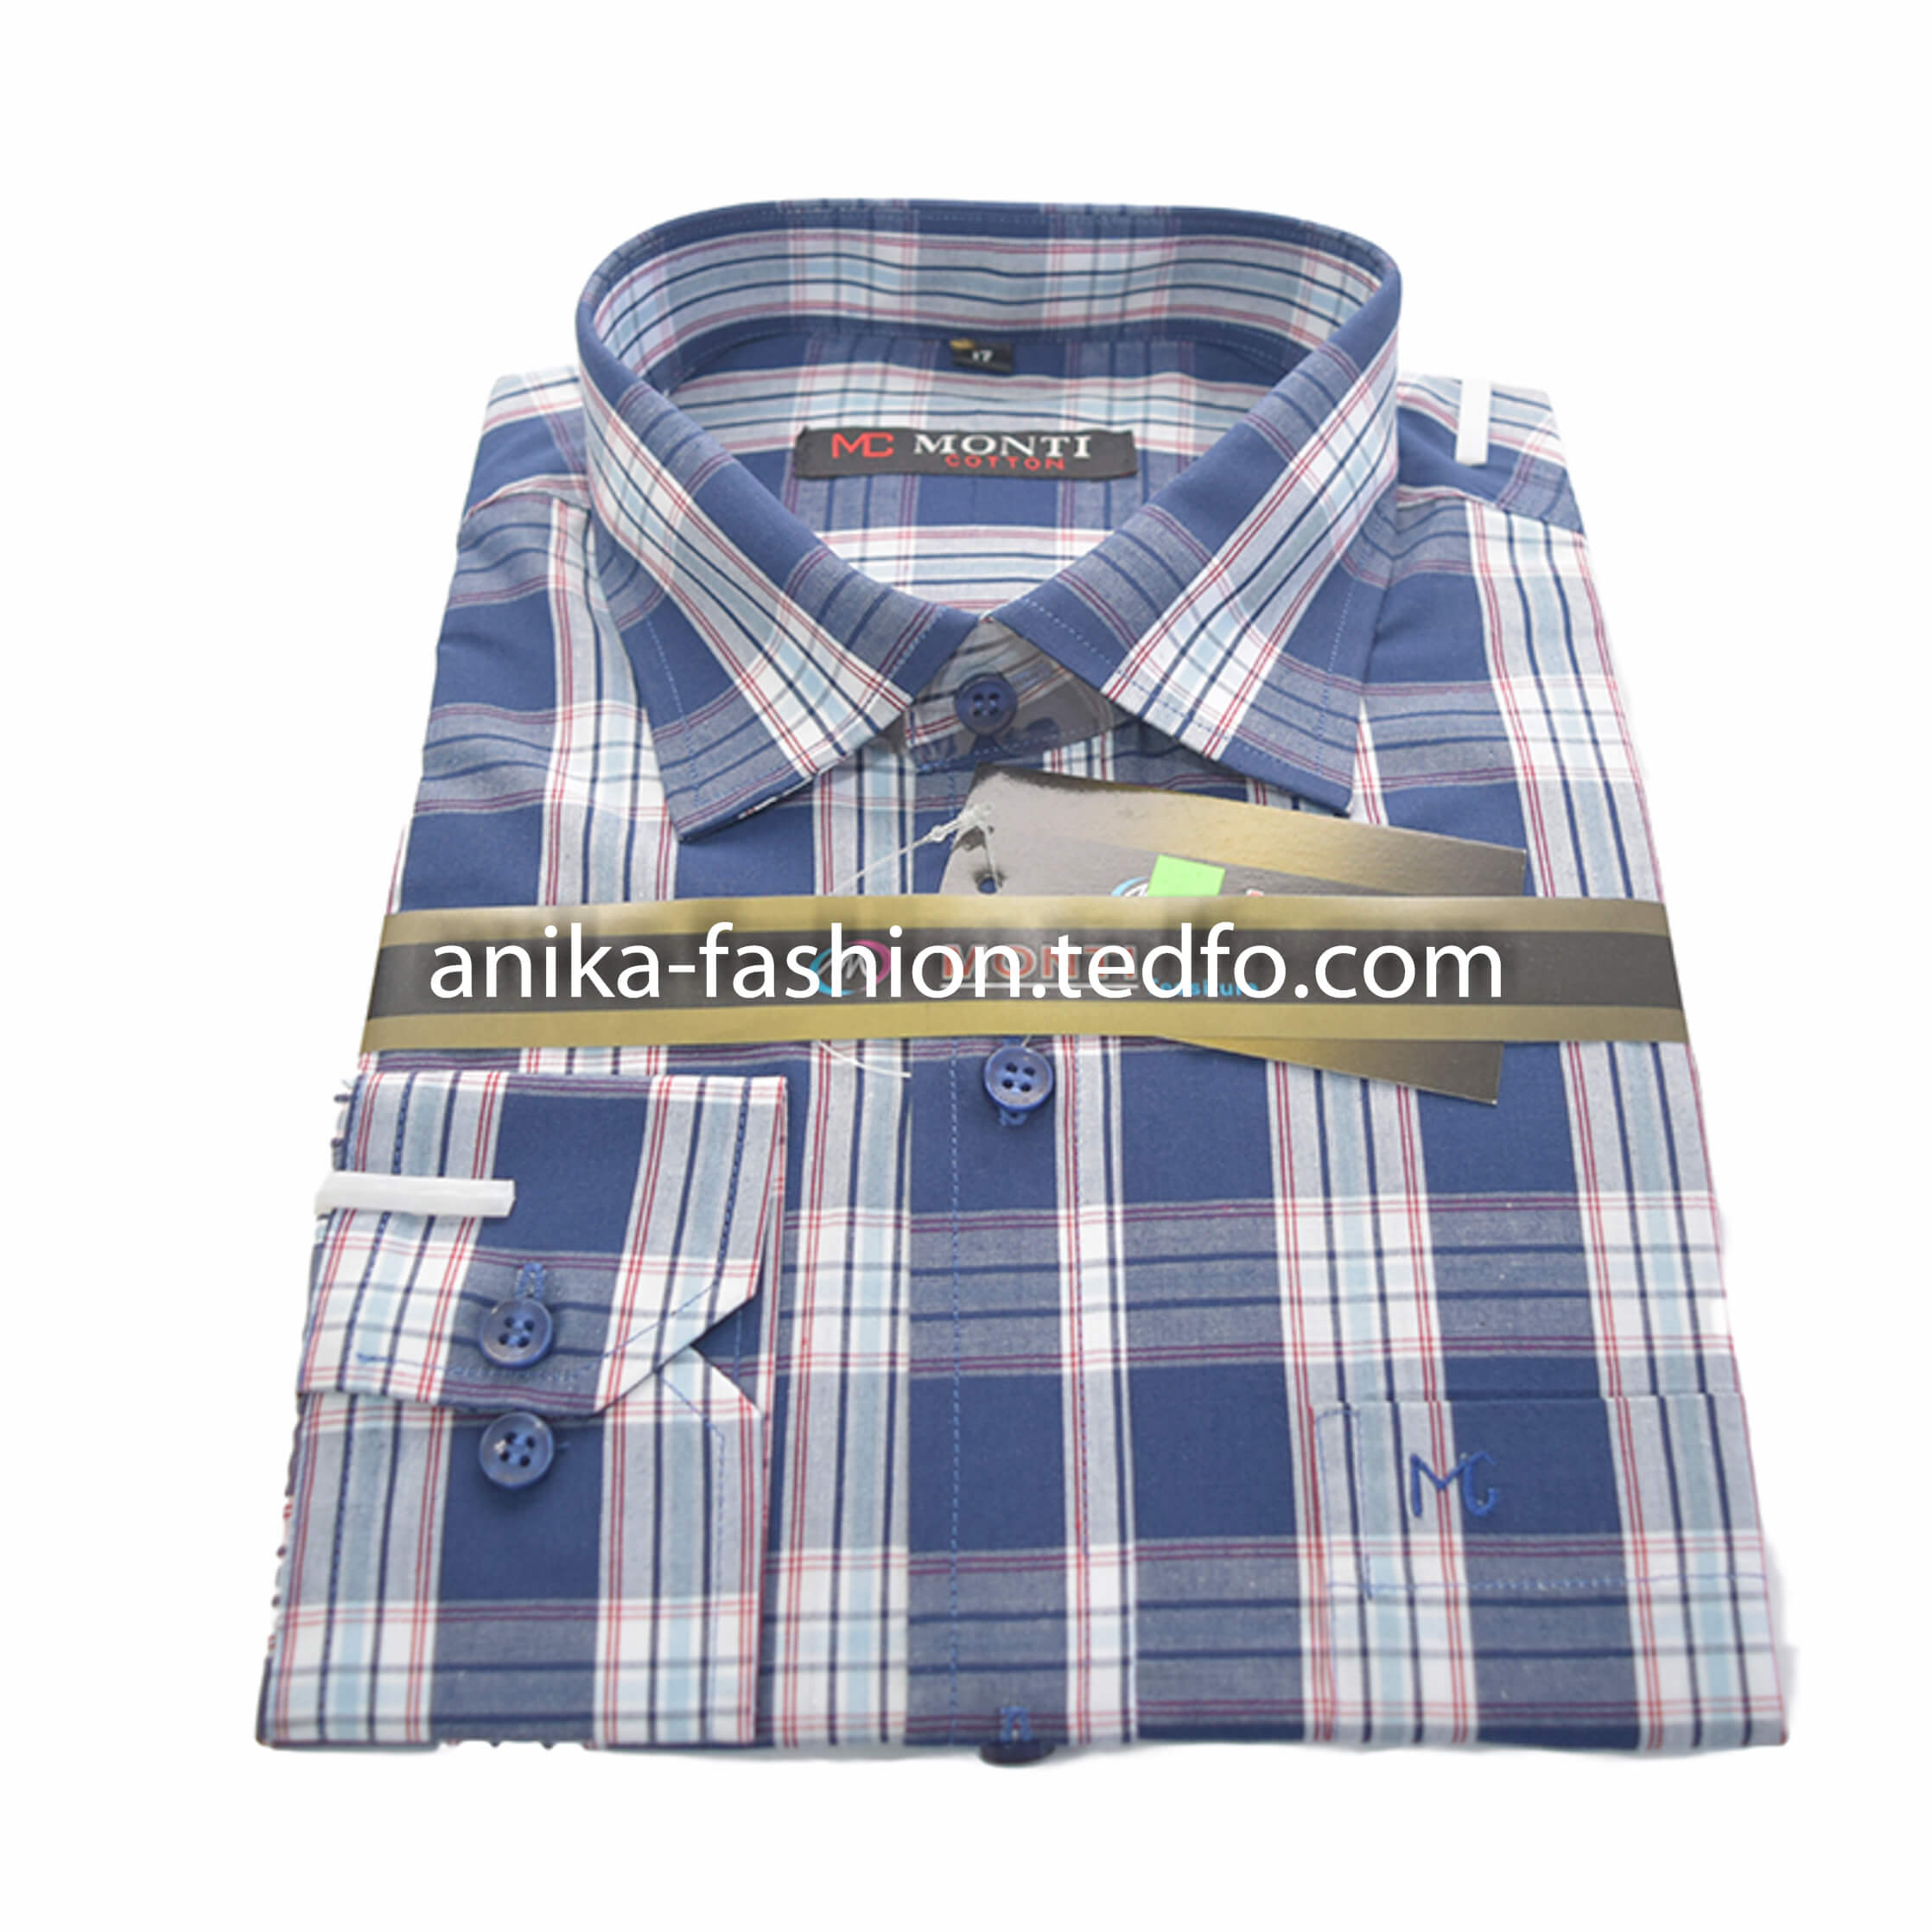 Full-Sleeve Shirt lowest price